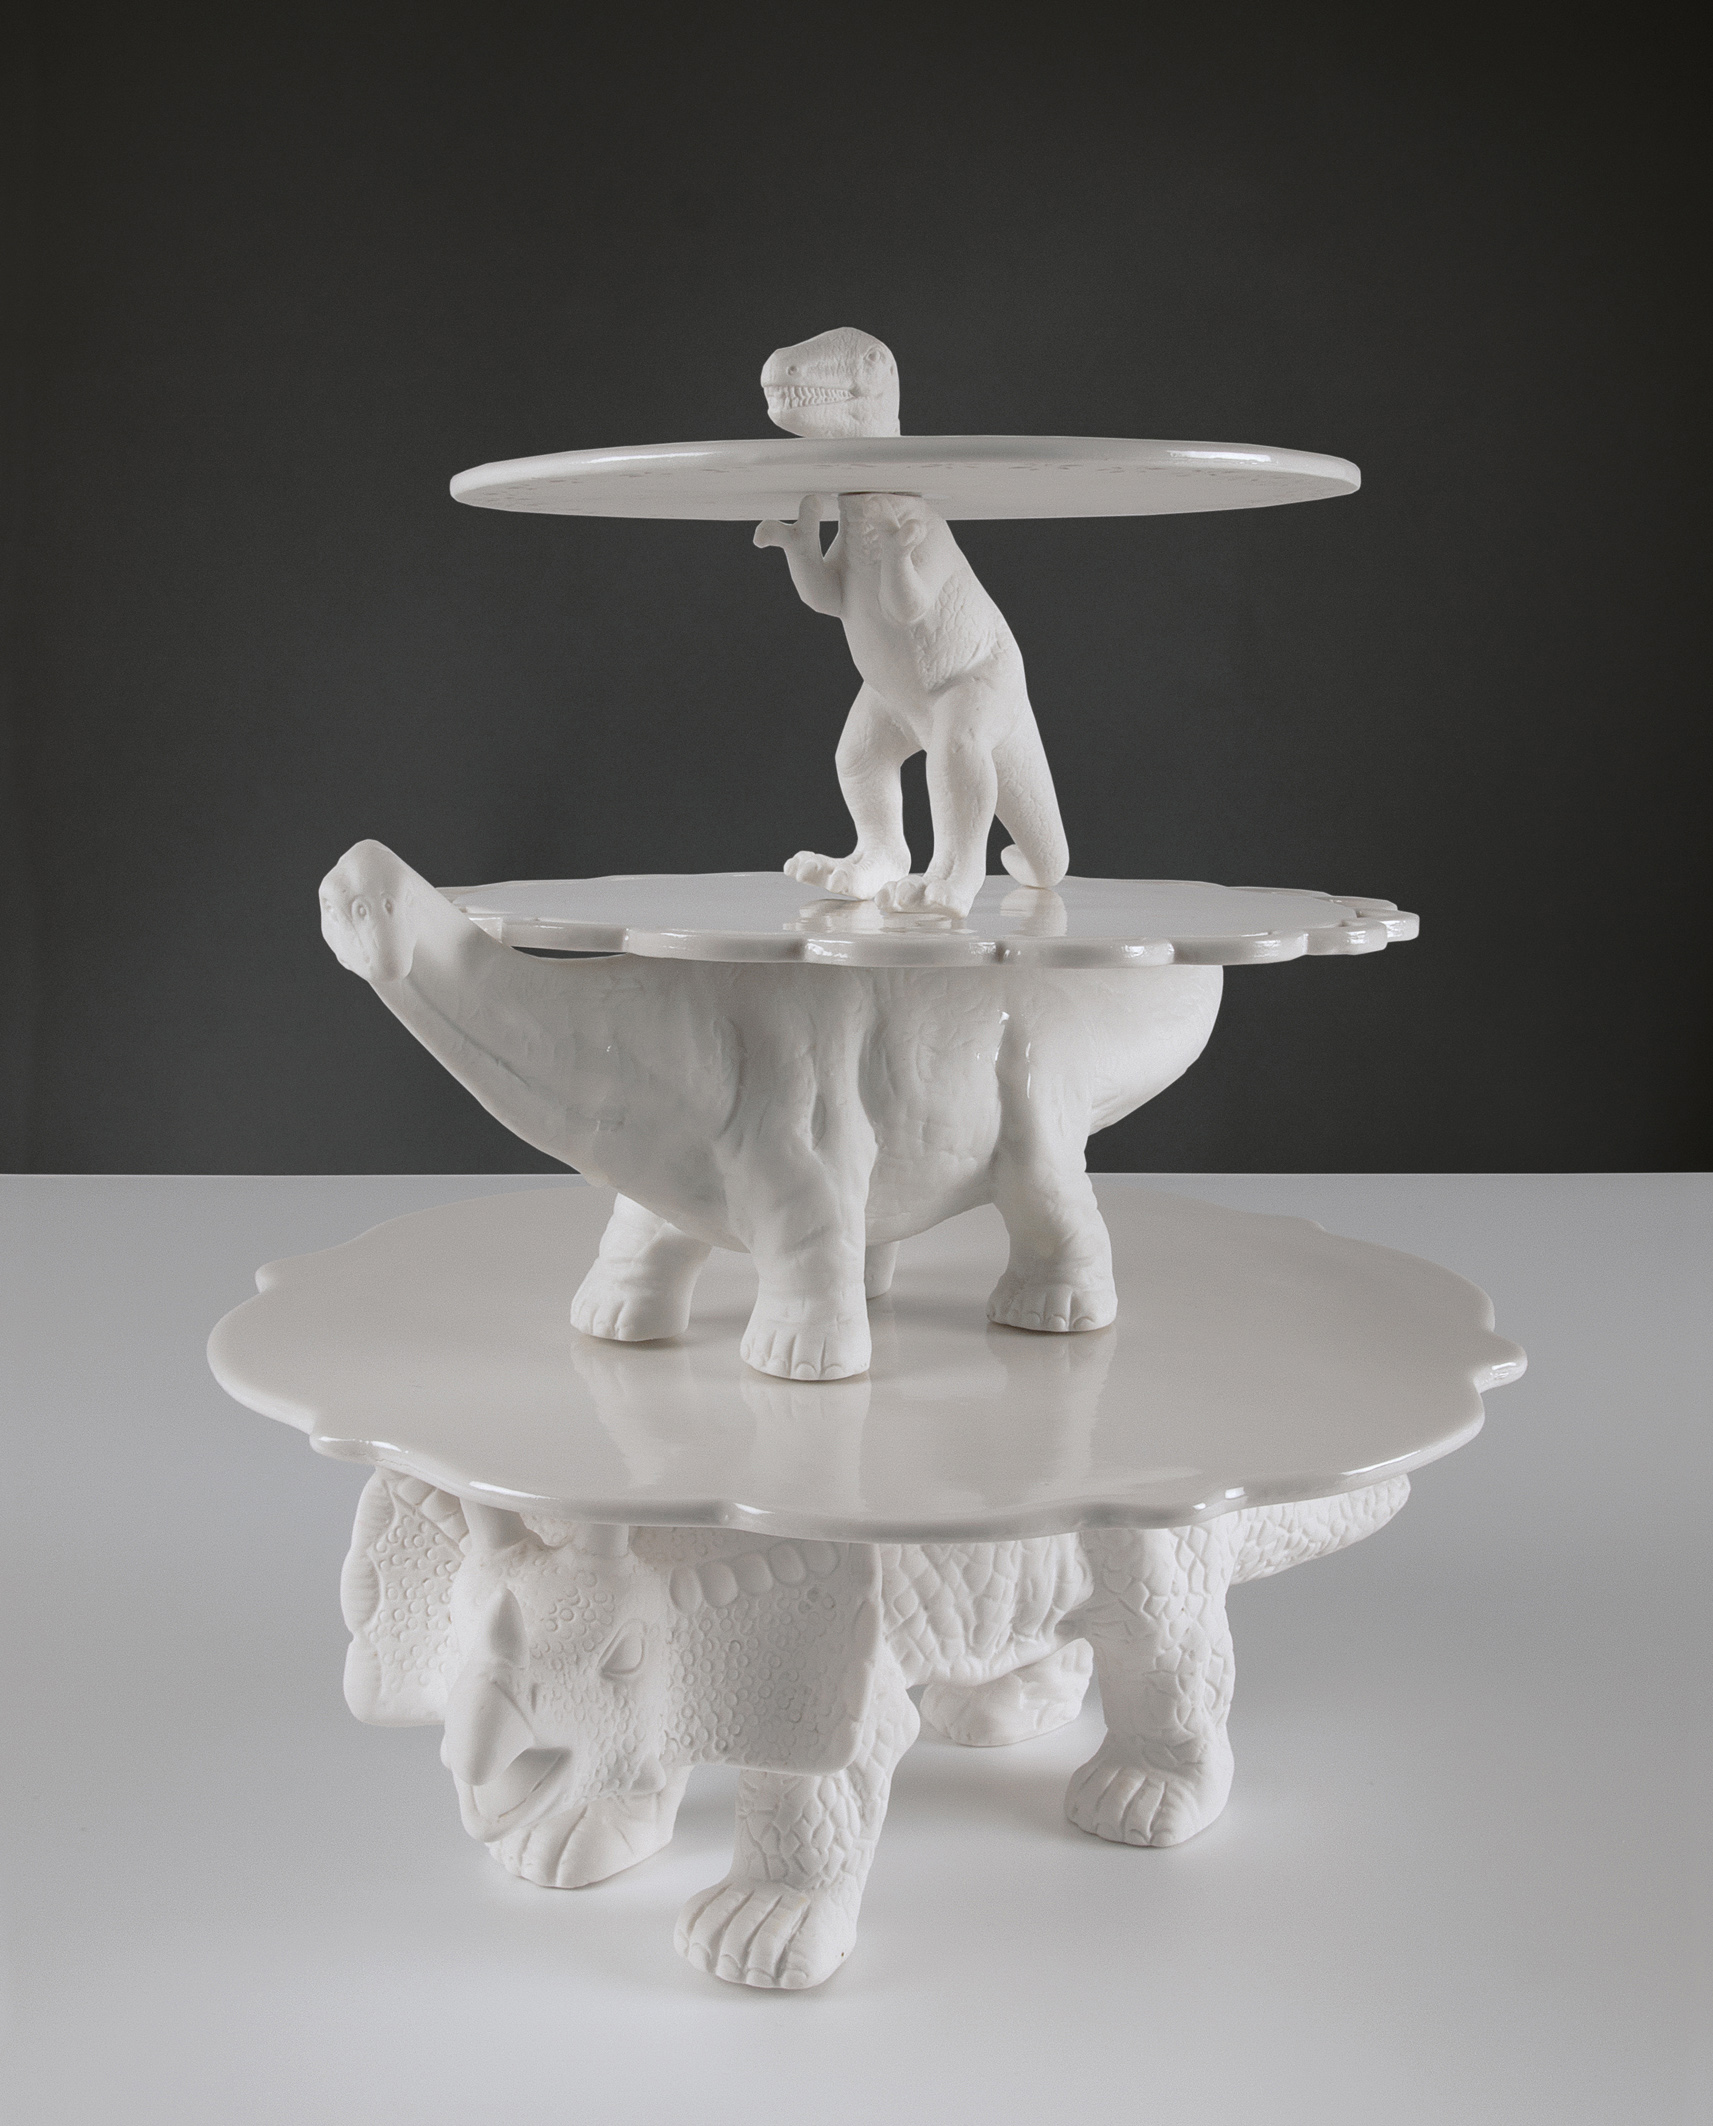 CAKE STANDS - SMALL, MEDIUM & LARGE